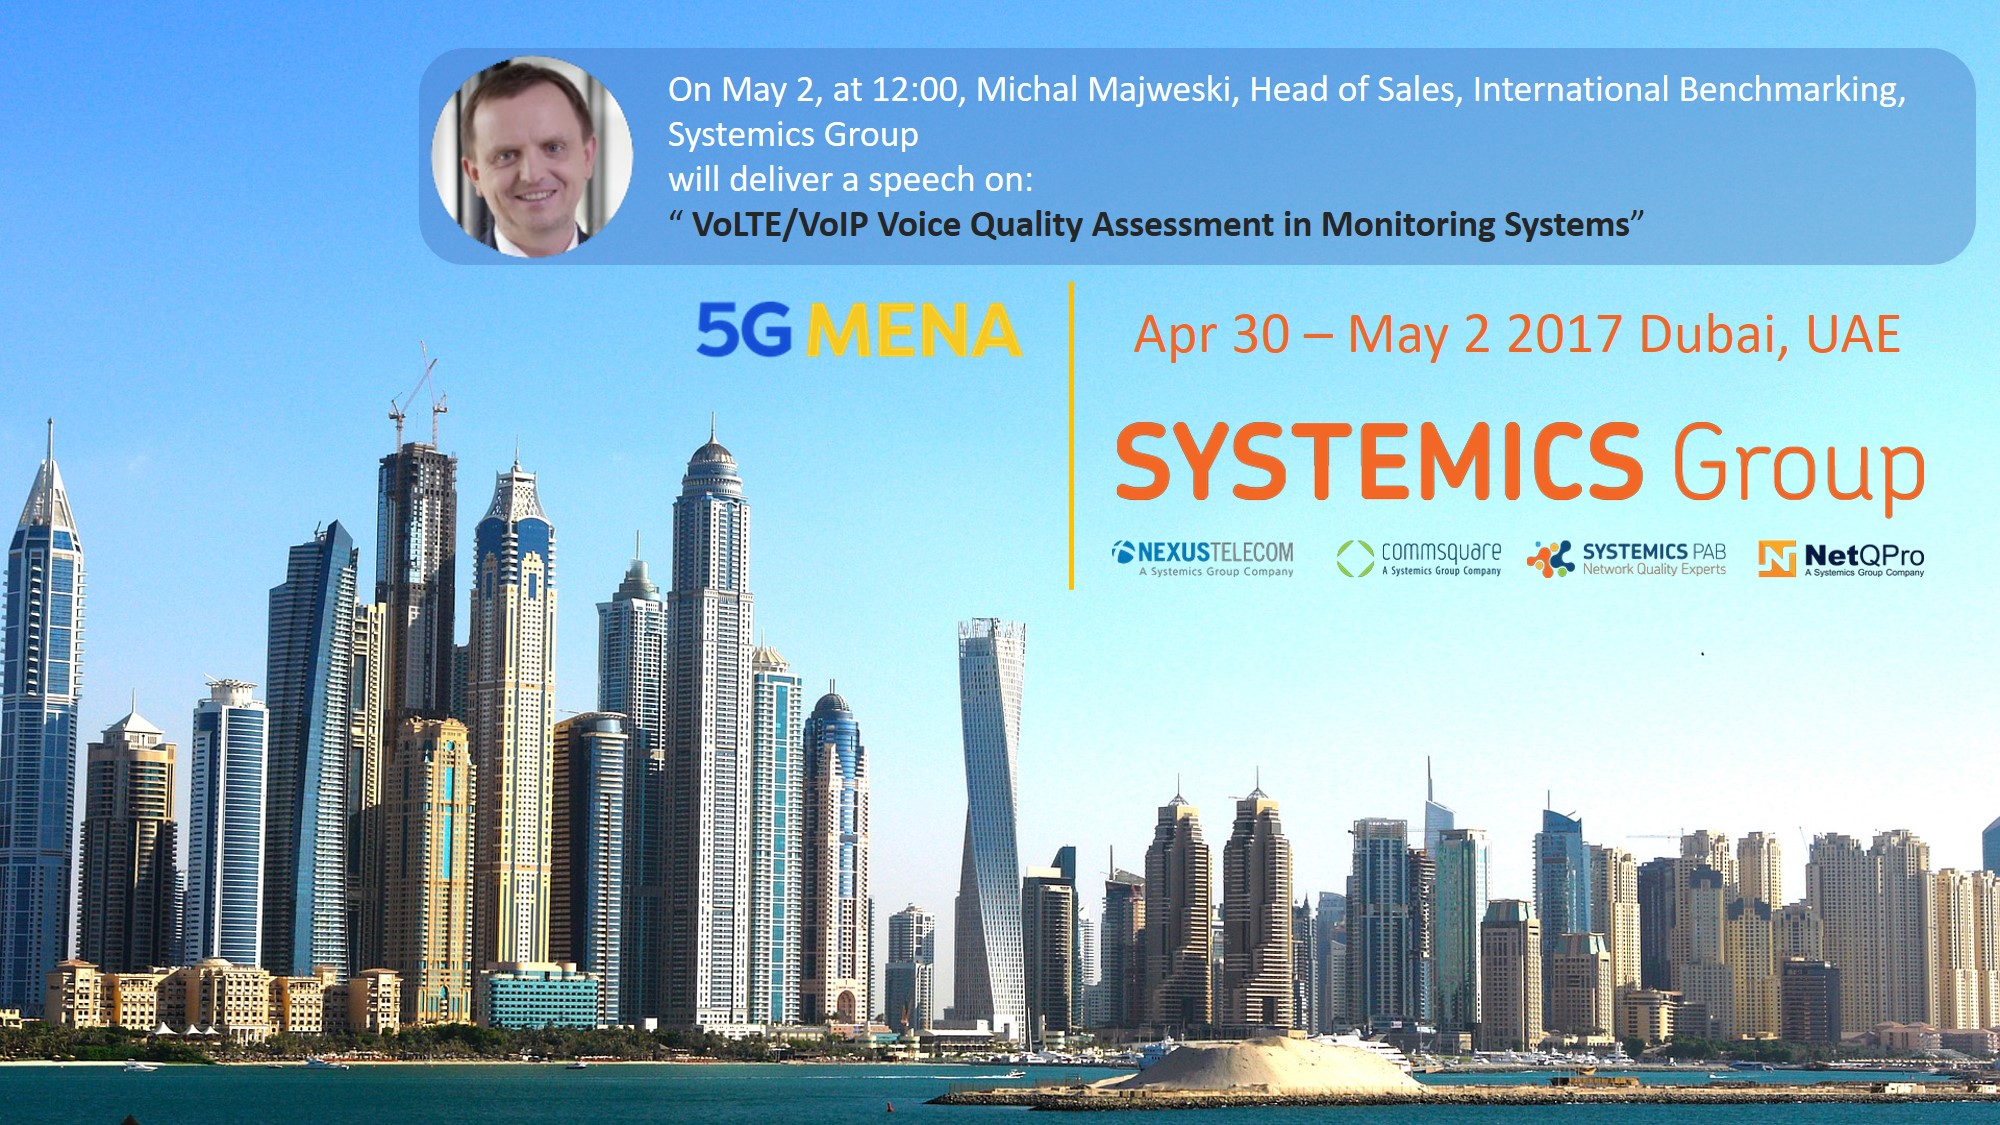 Systemics Group Meets the Demands of Tomorrow's Networks